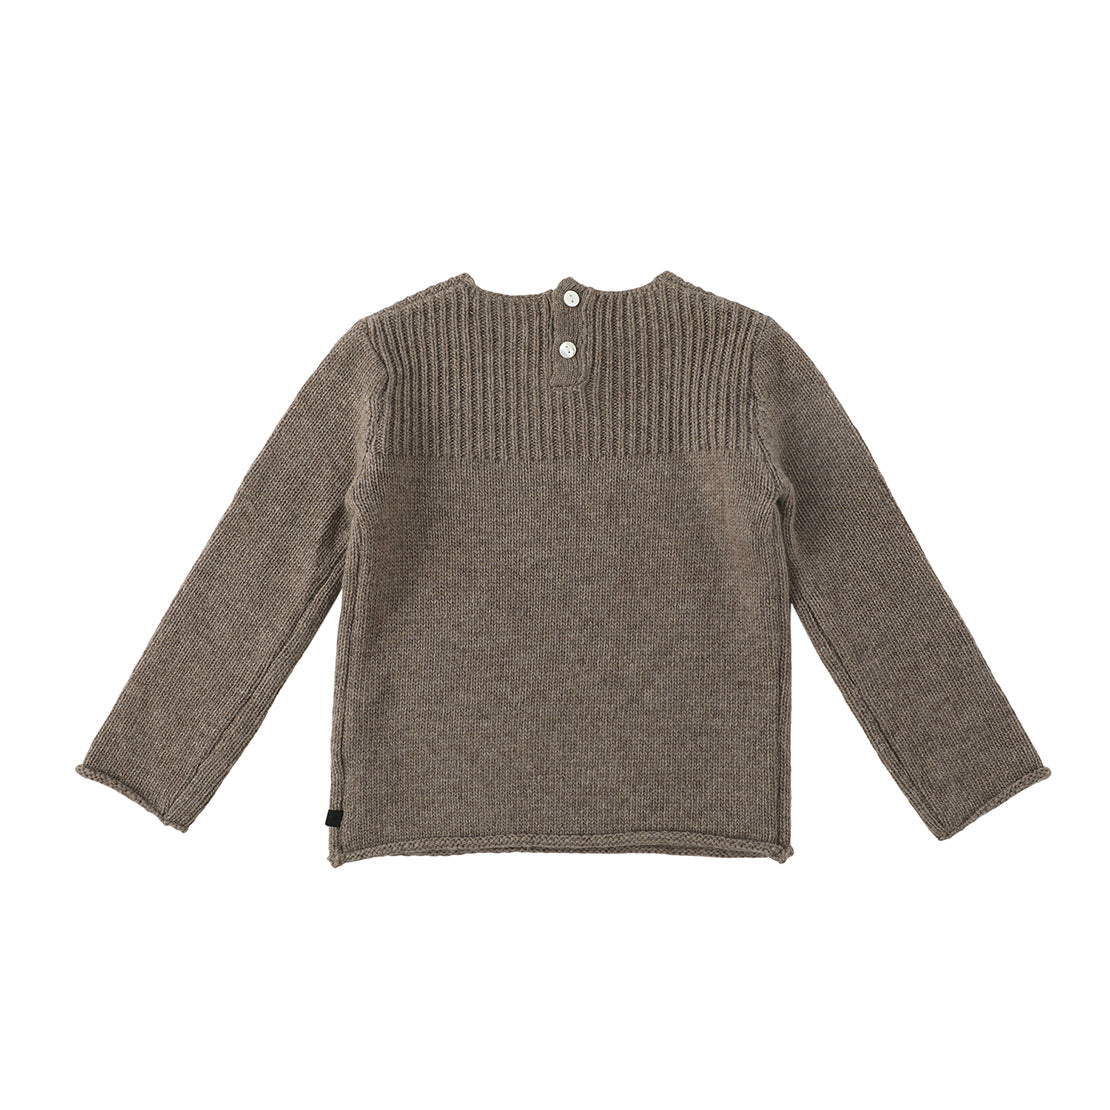 Bene Bene Khaki Brown Plum Knit Sweater